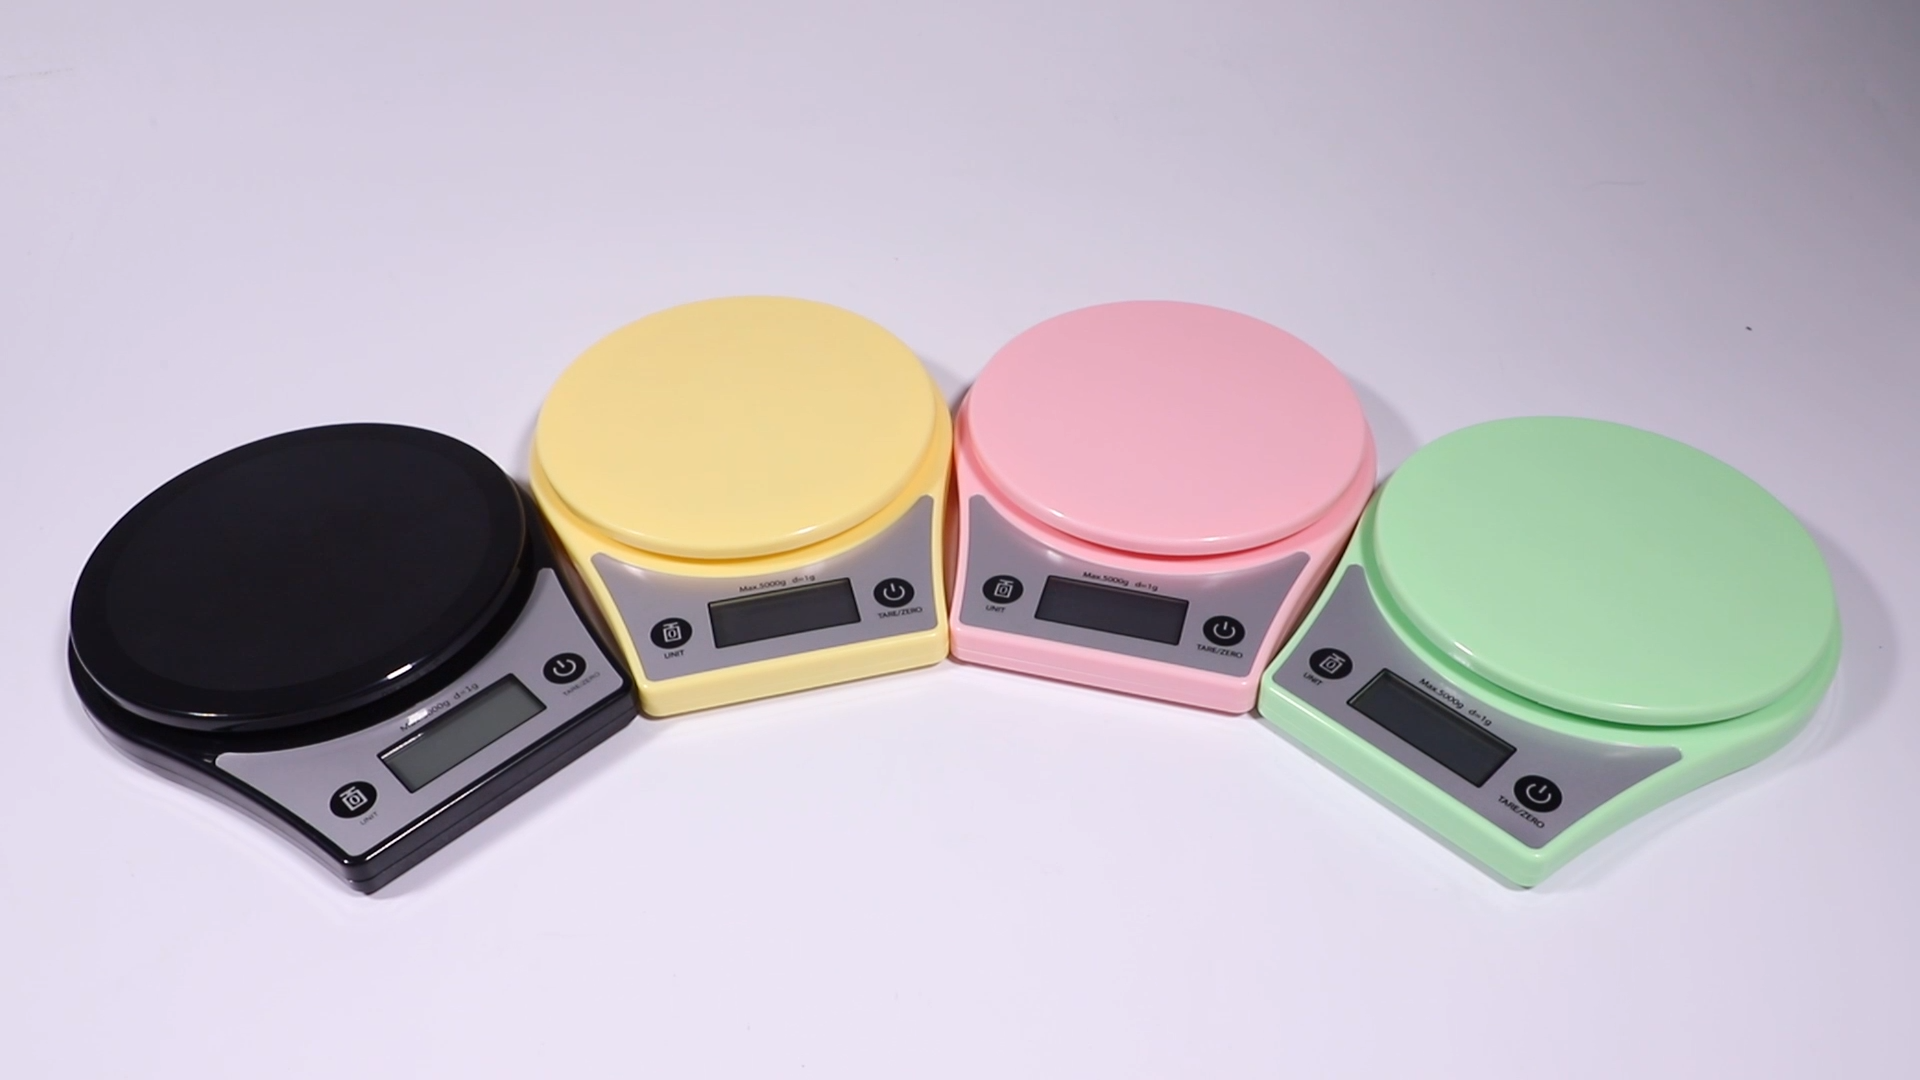 High precision digital Kitchen scale 5kg portable round scale food weighing scale